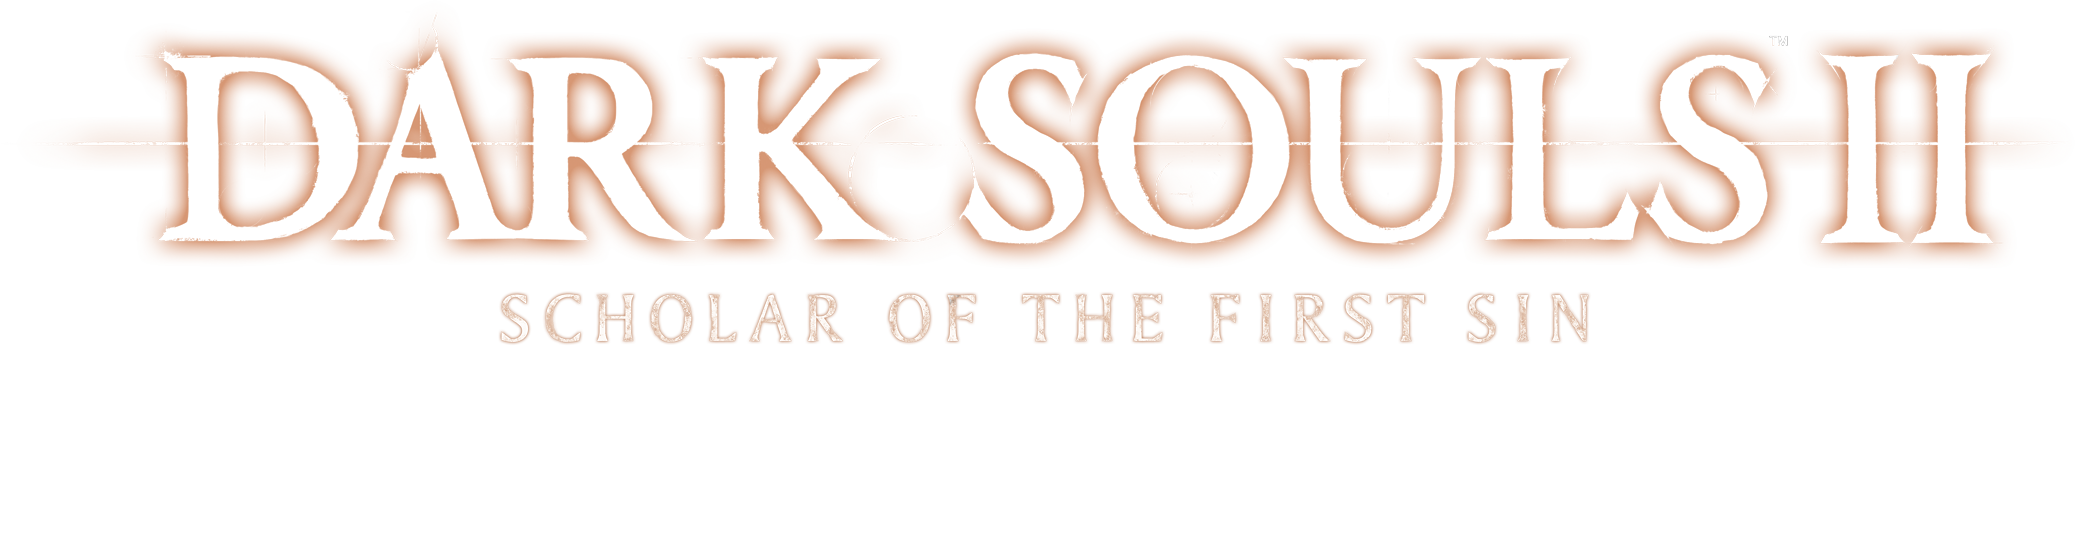 Dark souls 2 logo png. Scholar of the first